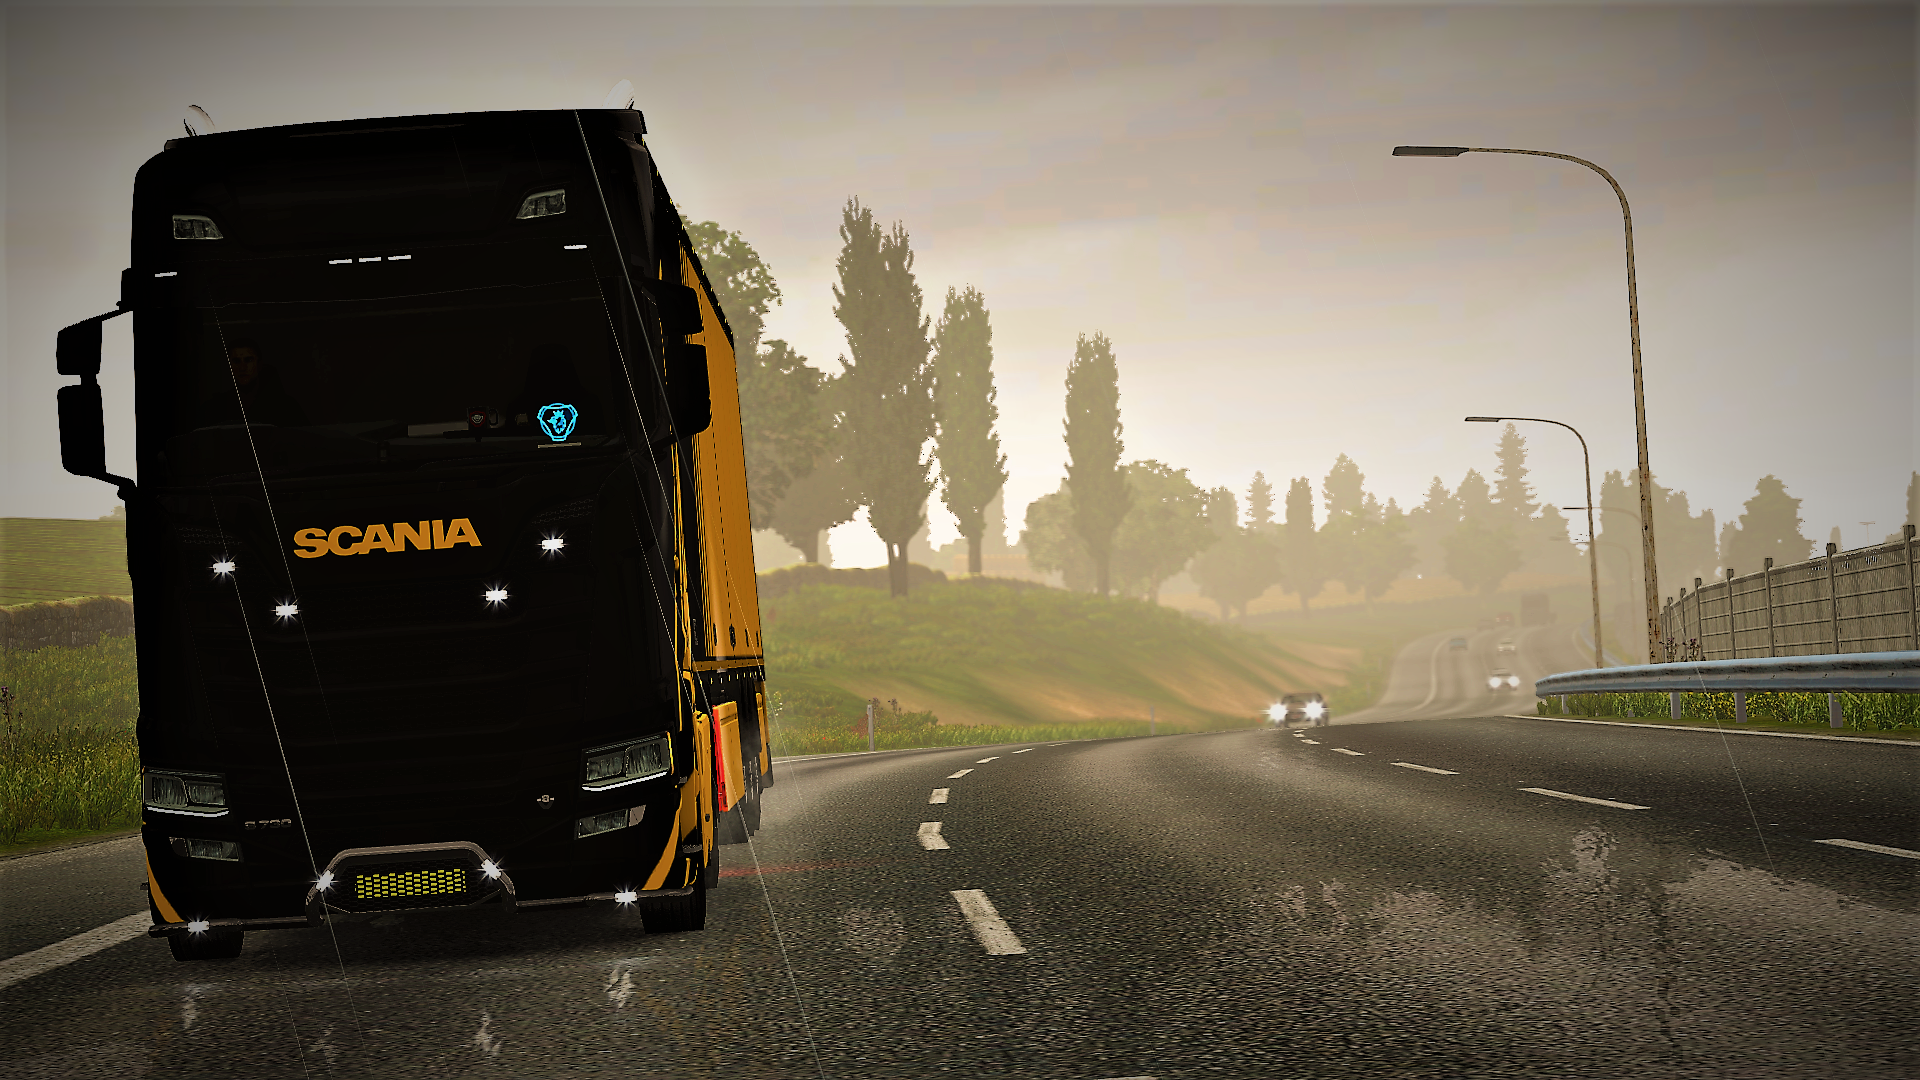 ets2_20190721_235036_00.png